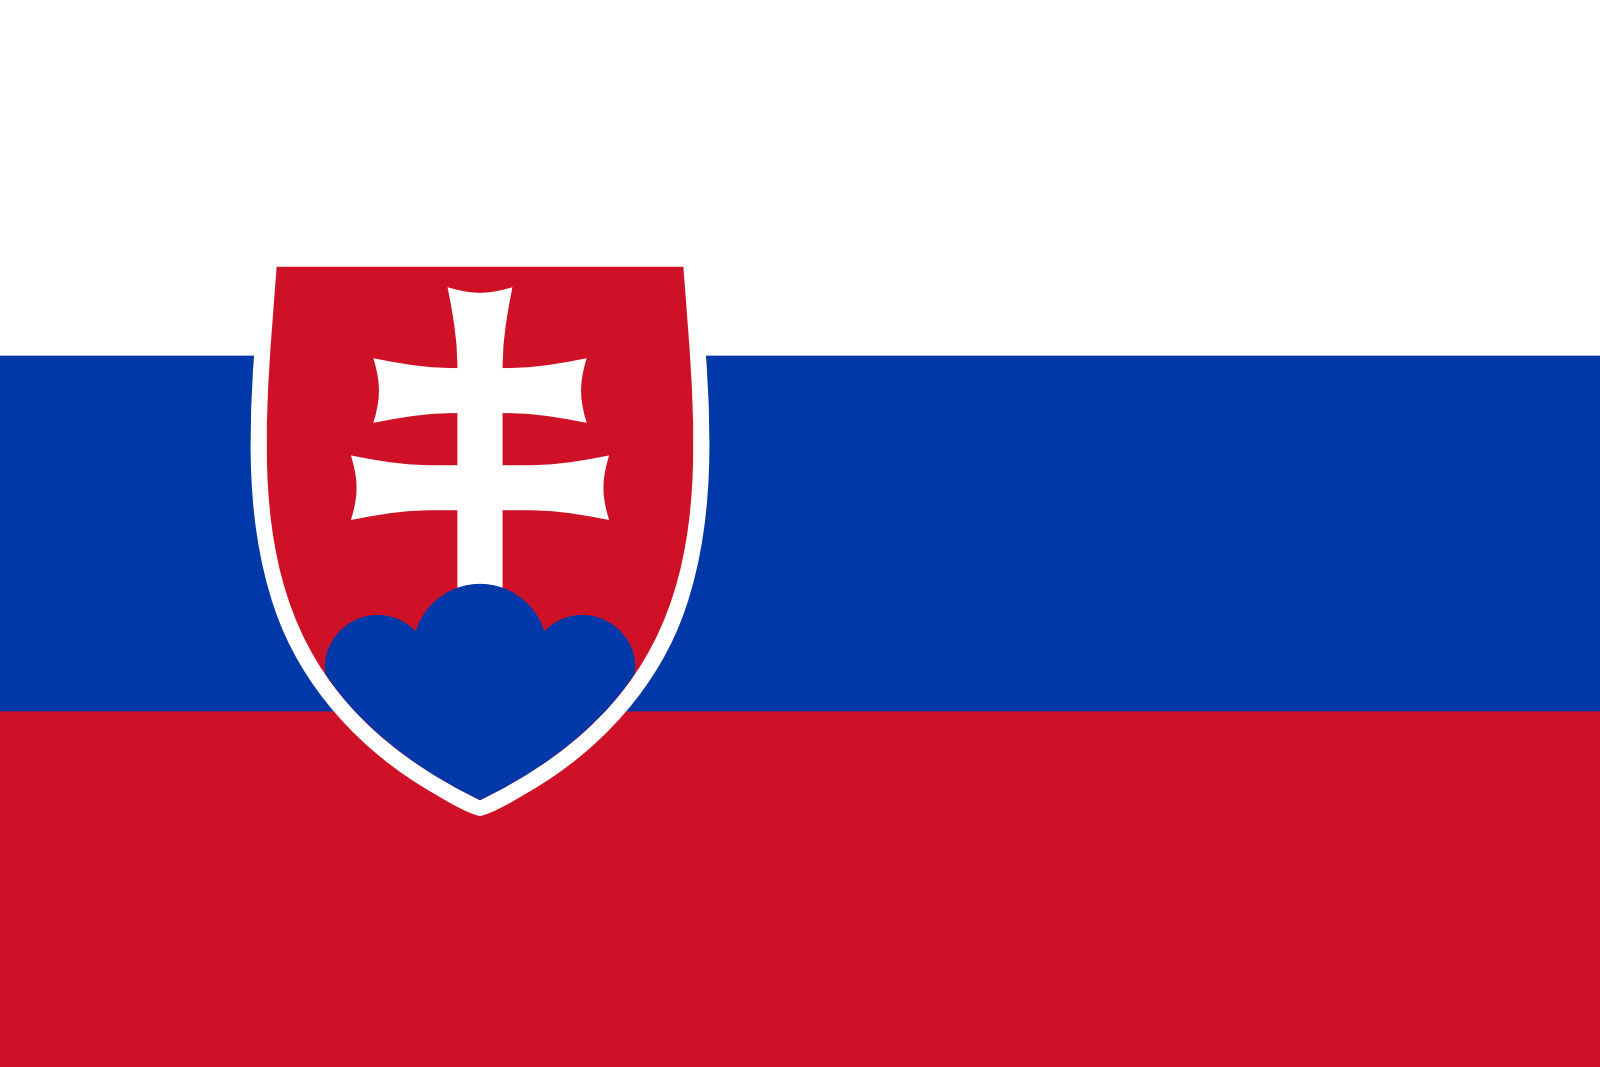 Slovenian or Slovakian? (Courtesy Flagpedia)